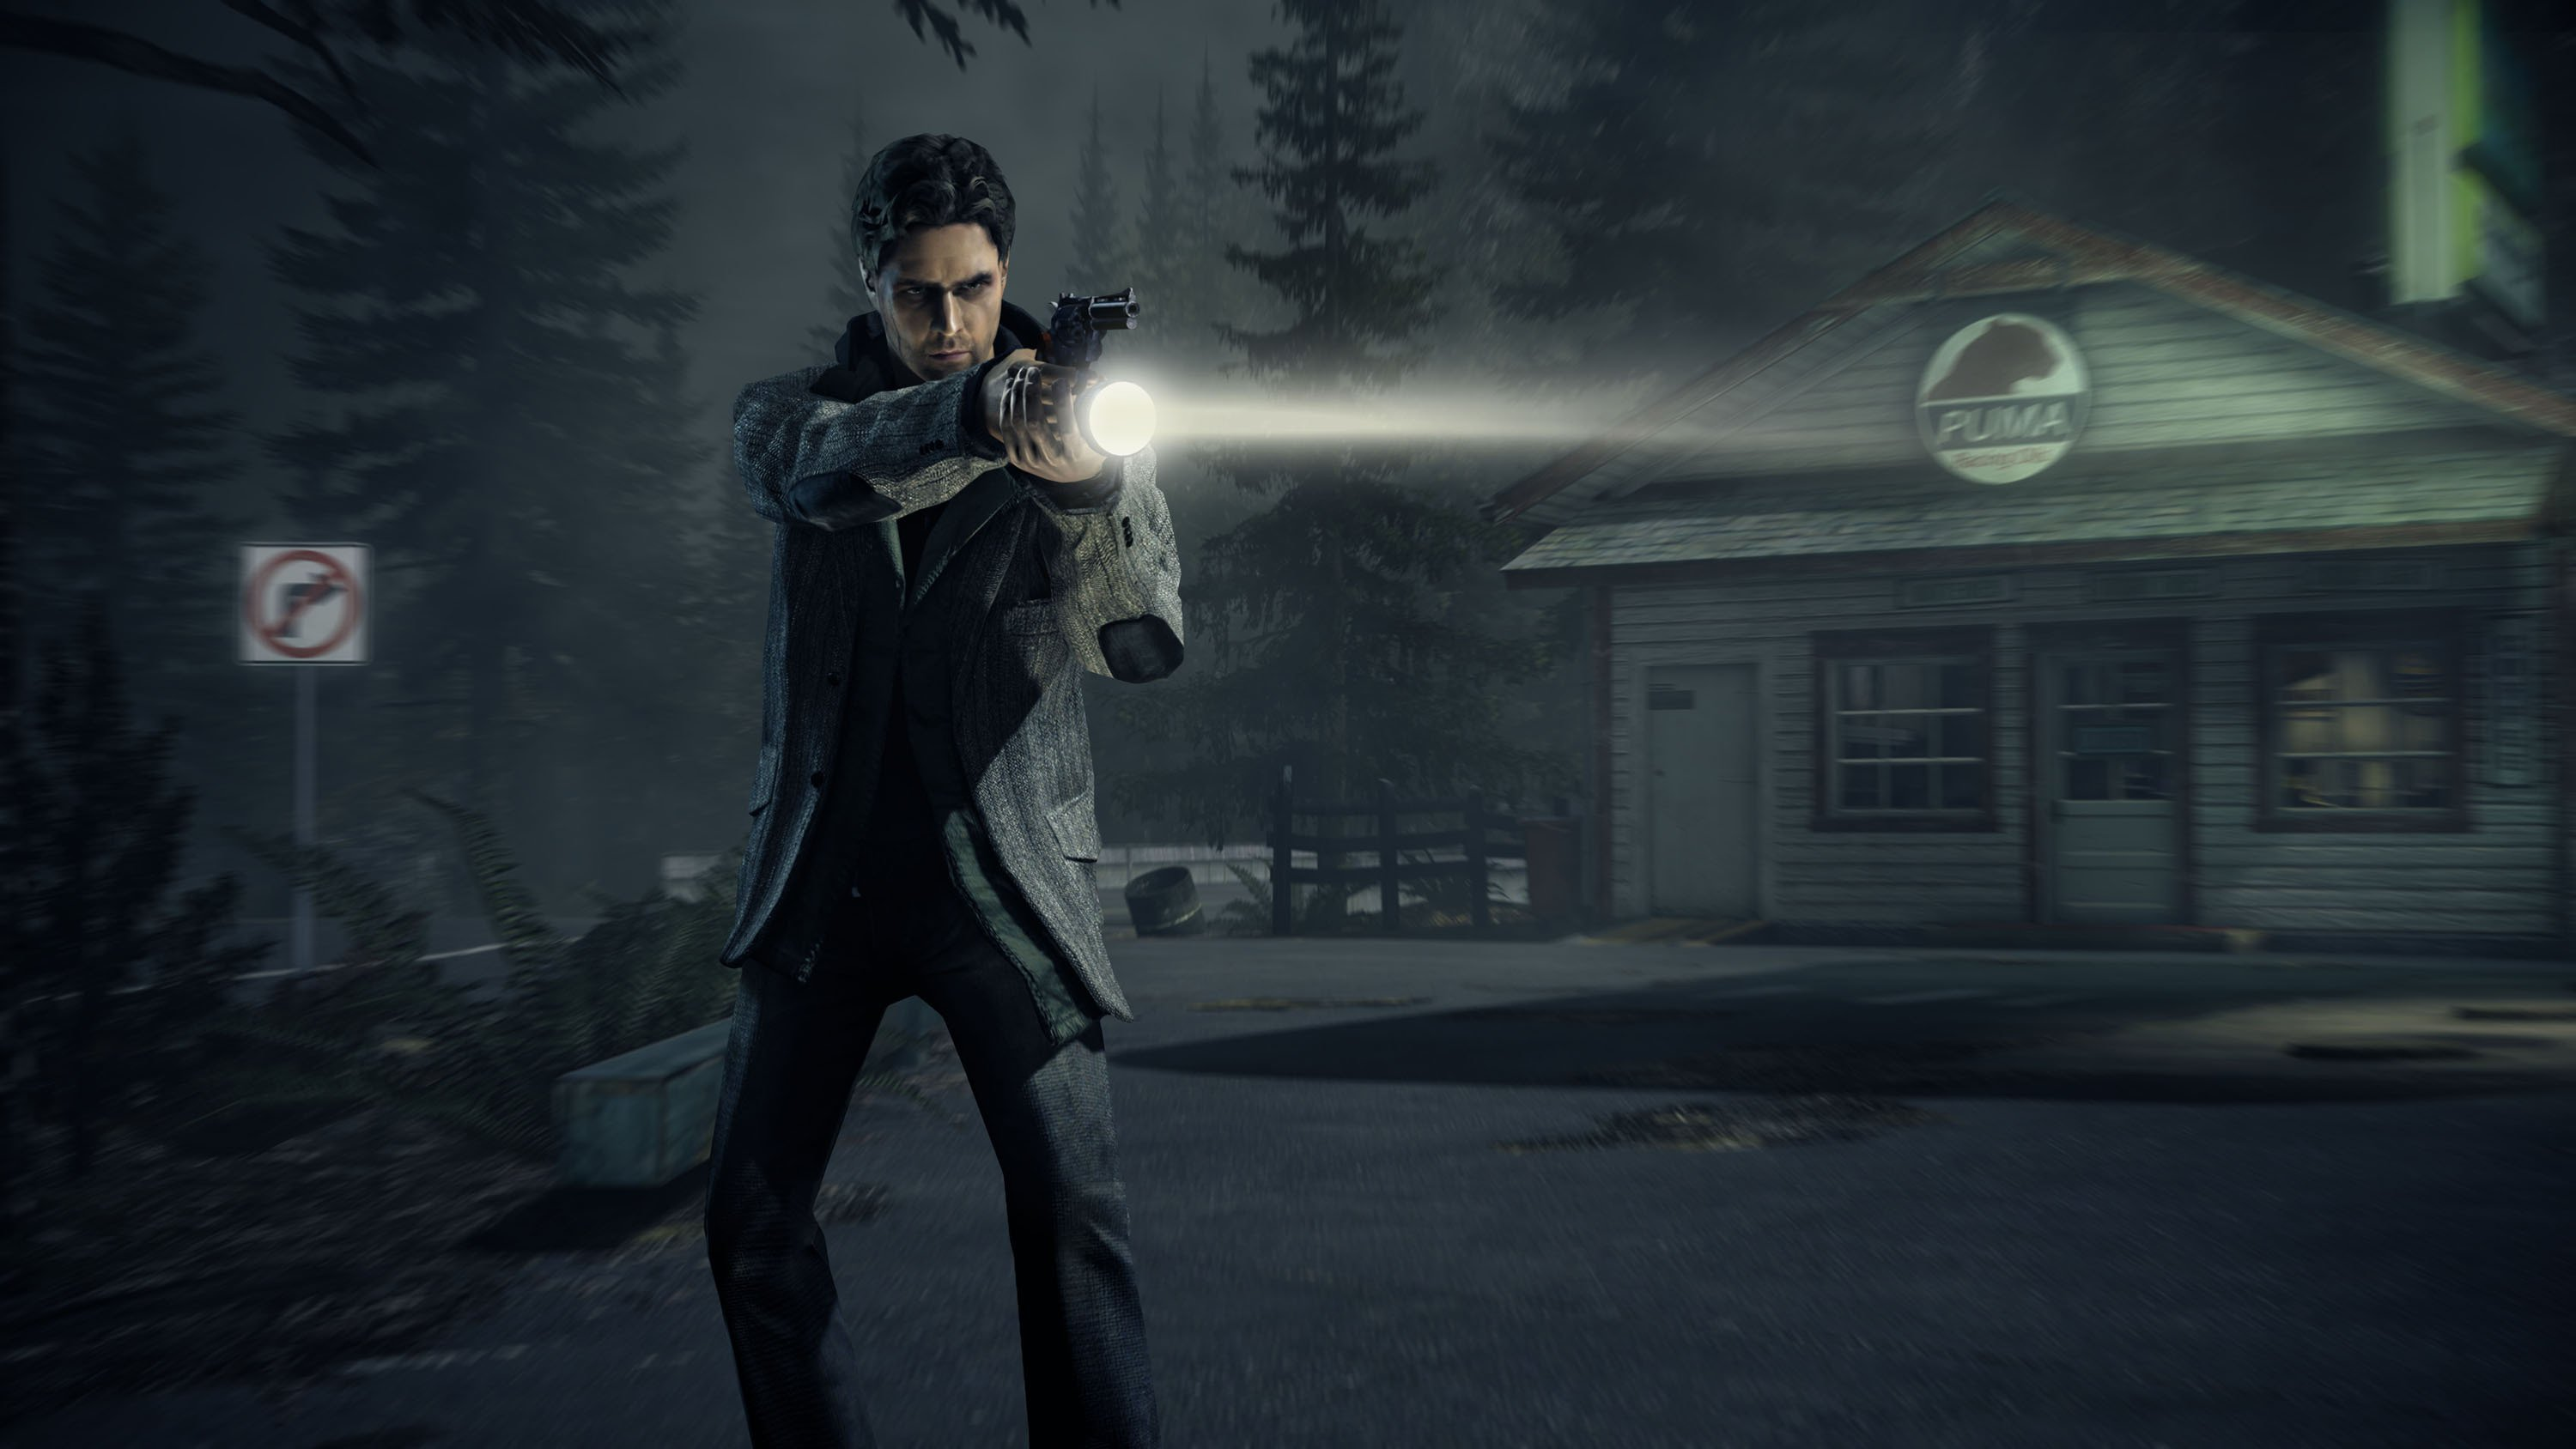 Sequels à Alan Wake et Quantum Break improbables